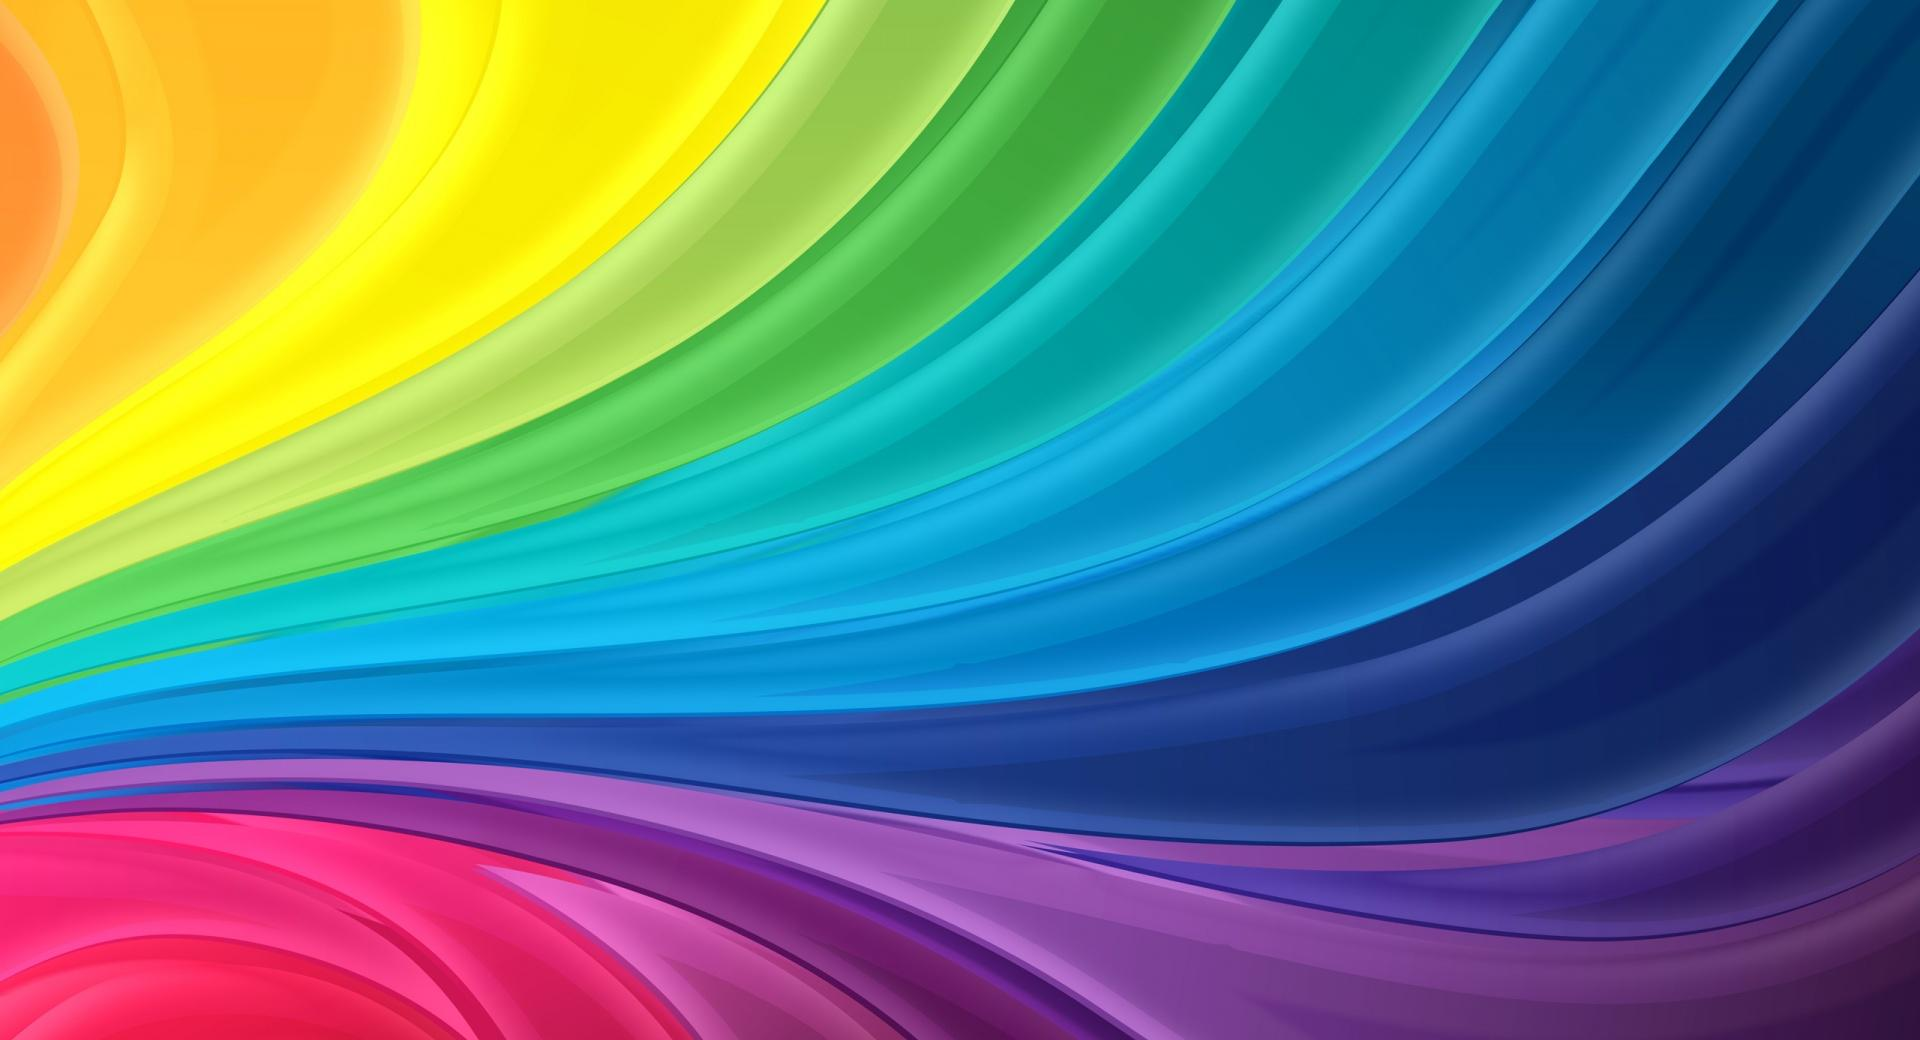 Abstract Rainbow Flow wallpapers HD quality